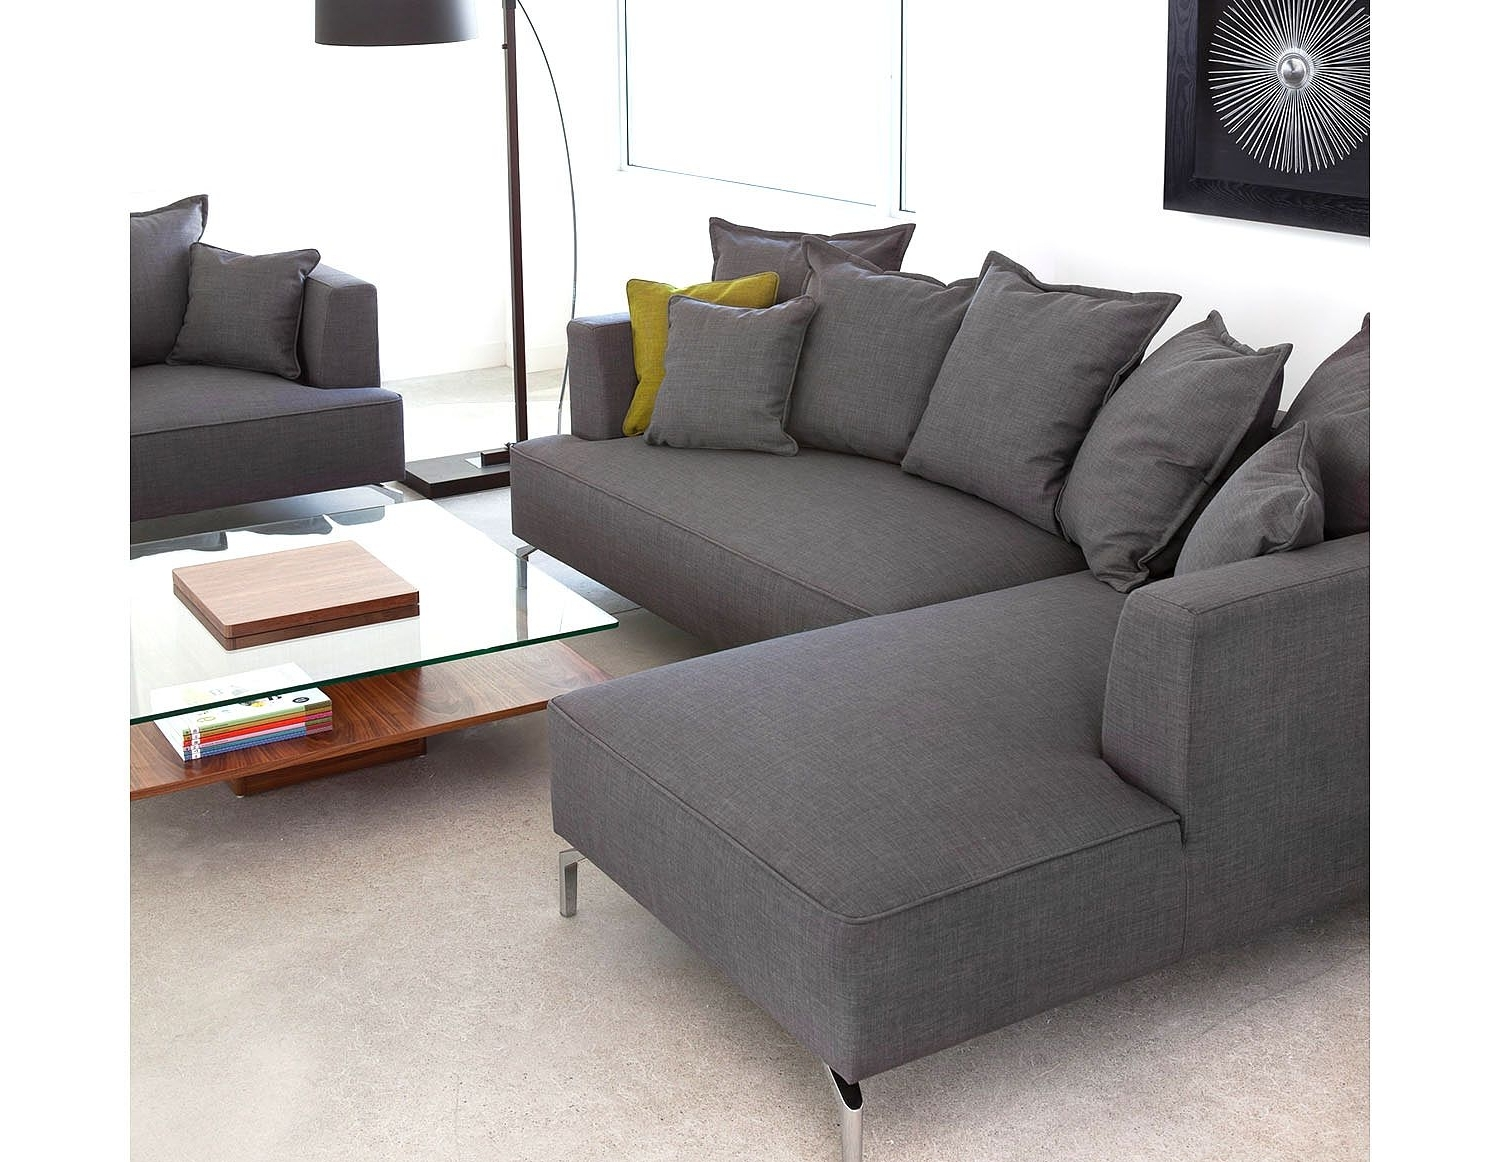 Structube Sectional Sofas For Most Current Structube – Lighting : Floor Lamps : Curva (dark Brown) (View 2 of 20)